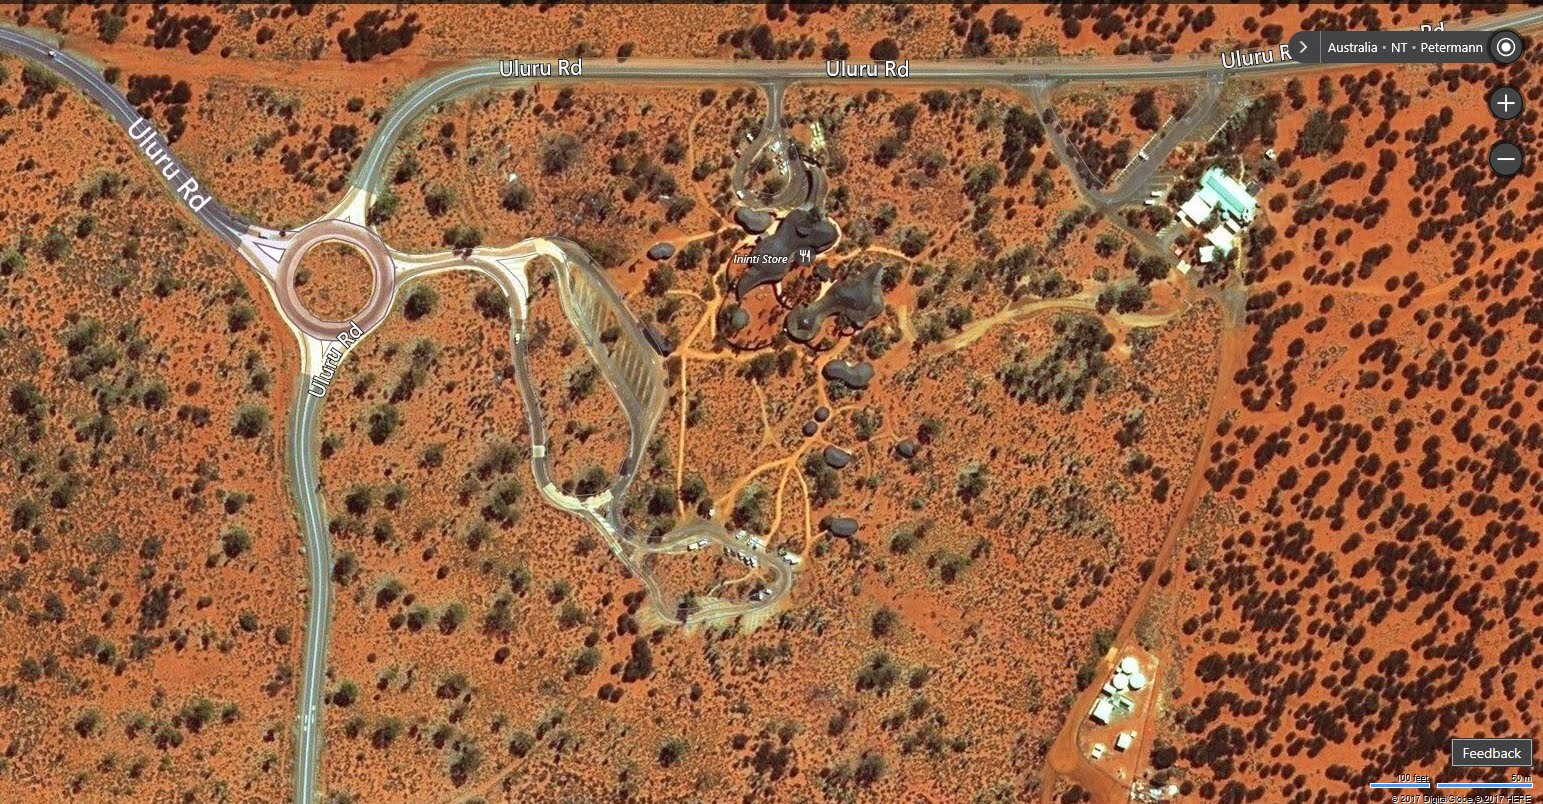 Bing Maps updates satellite imagery for Australia and India – Bing Maps Satellite Image